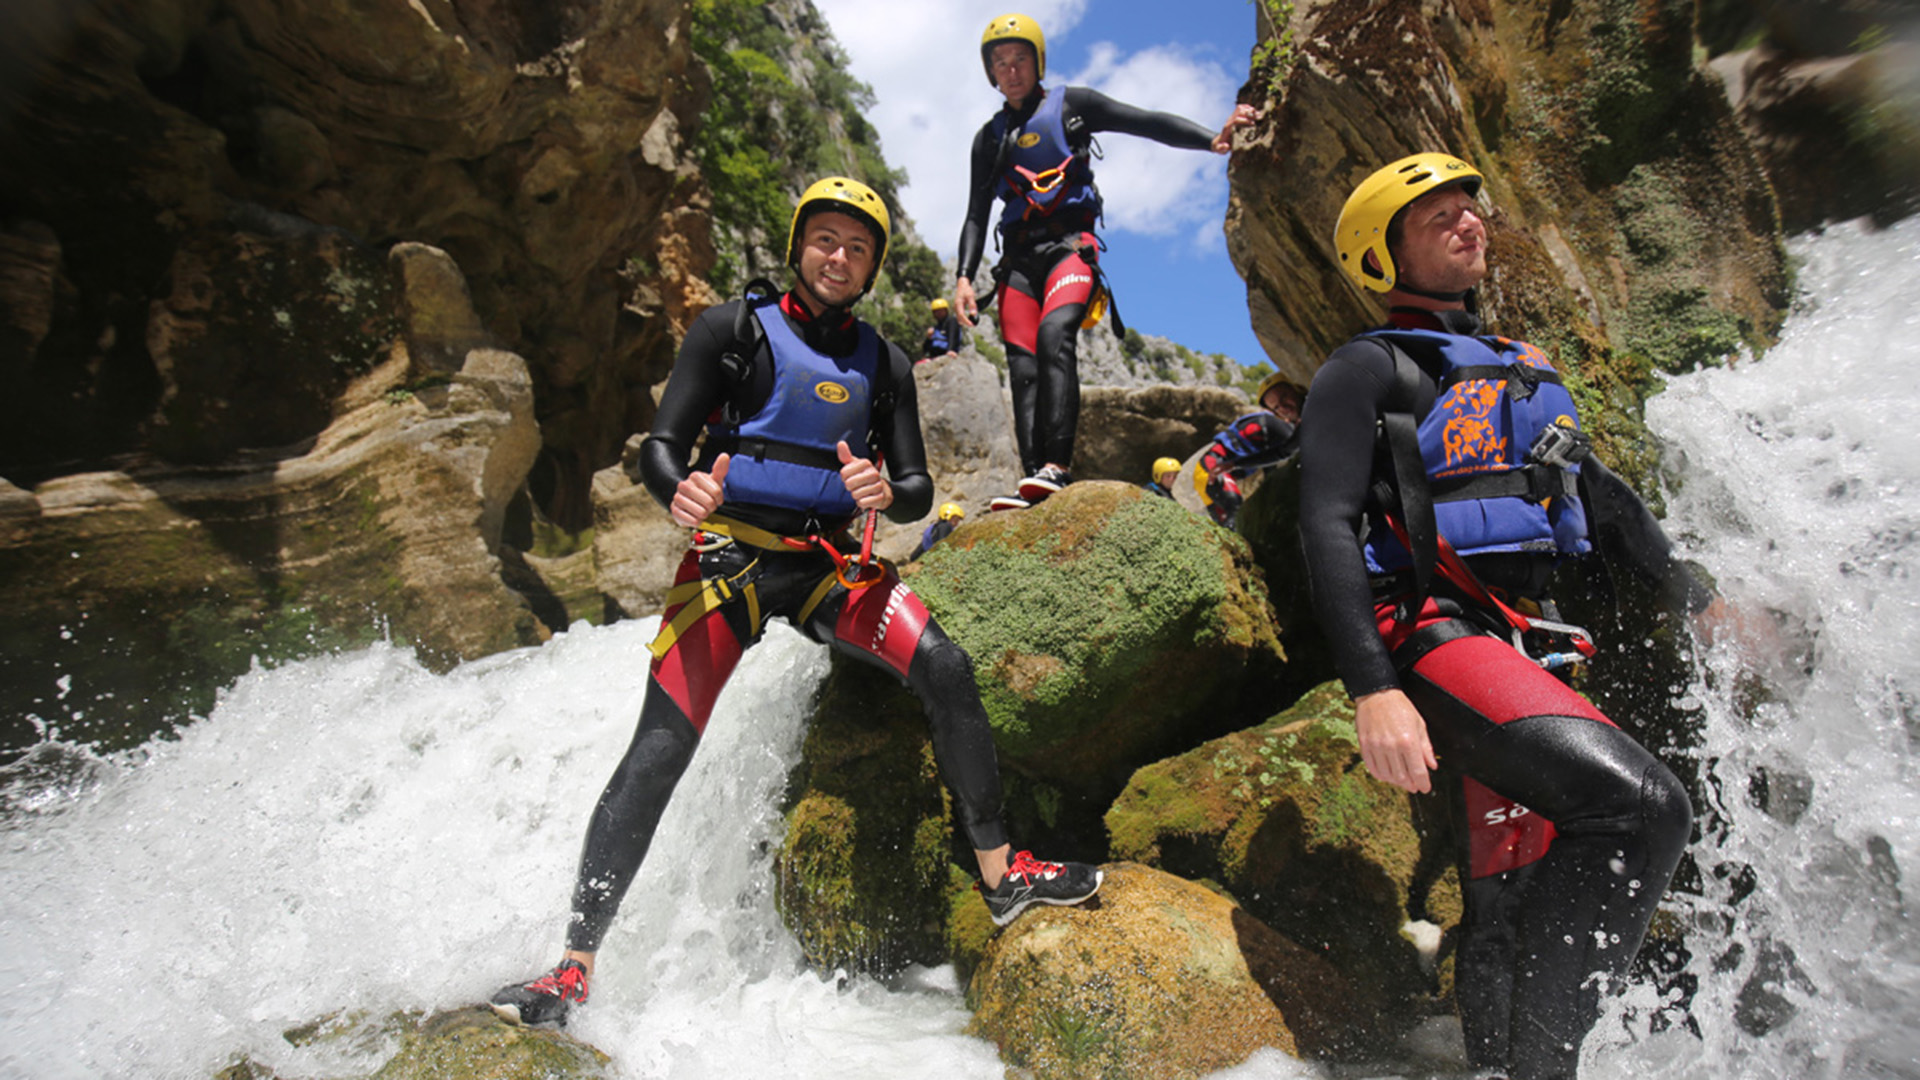 river canyoning adrenaline adventure 13